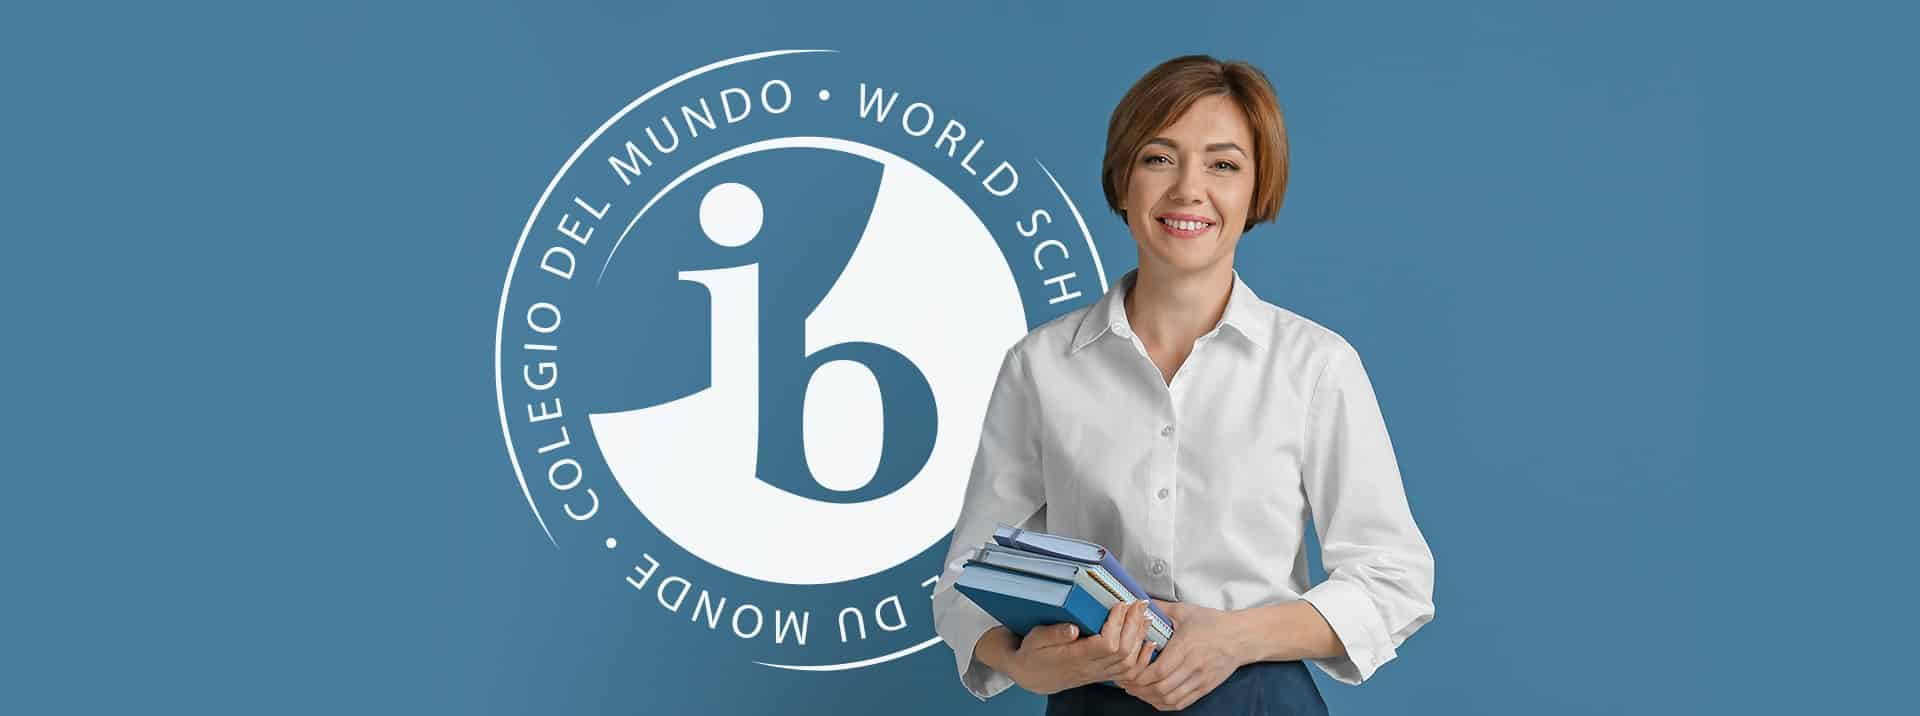 FeatImage_WhatIsTheIBProgram-AskTheExperts_1920x716-min What is the IB International Baccalaureate Program? Ask the Experts!